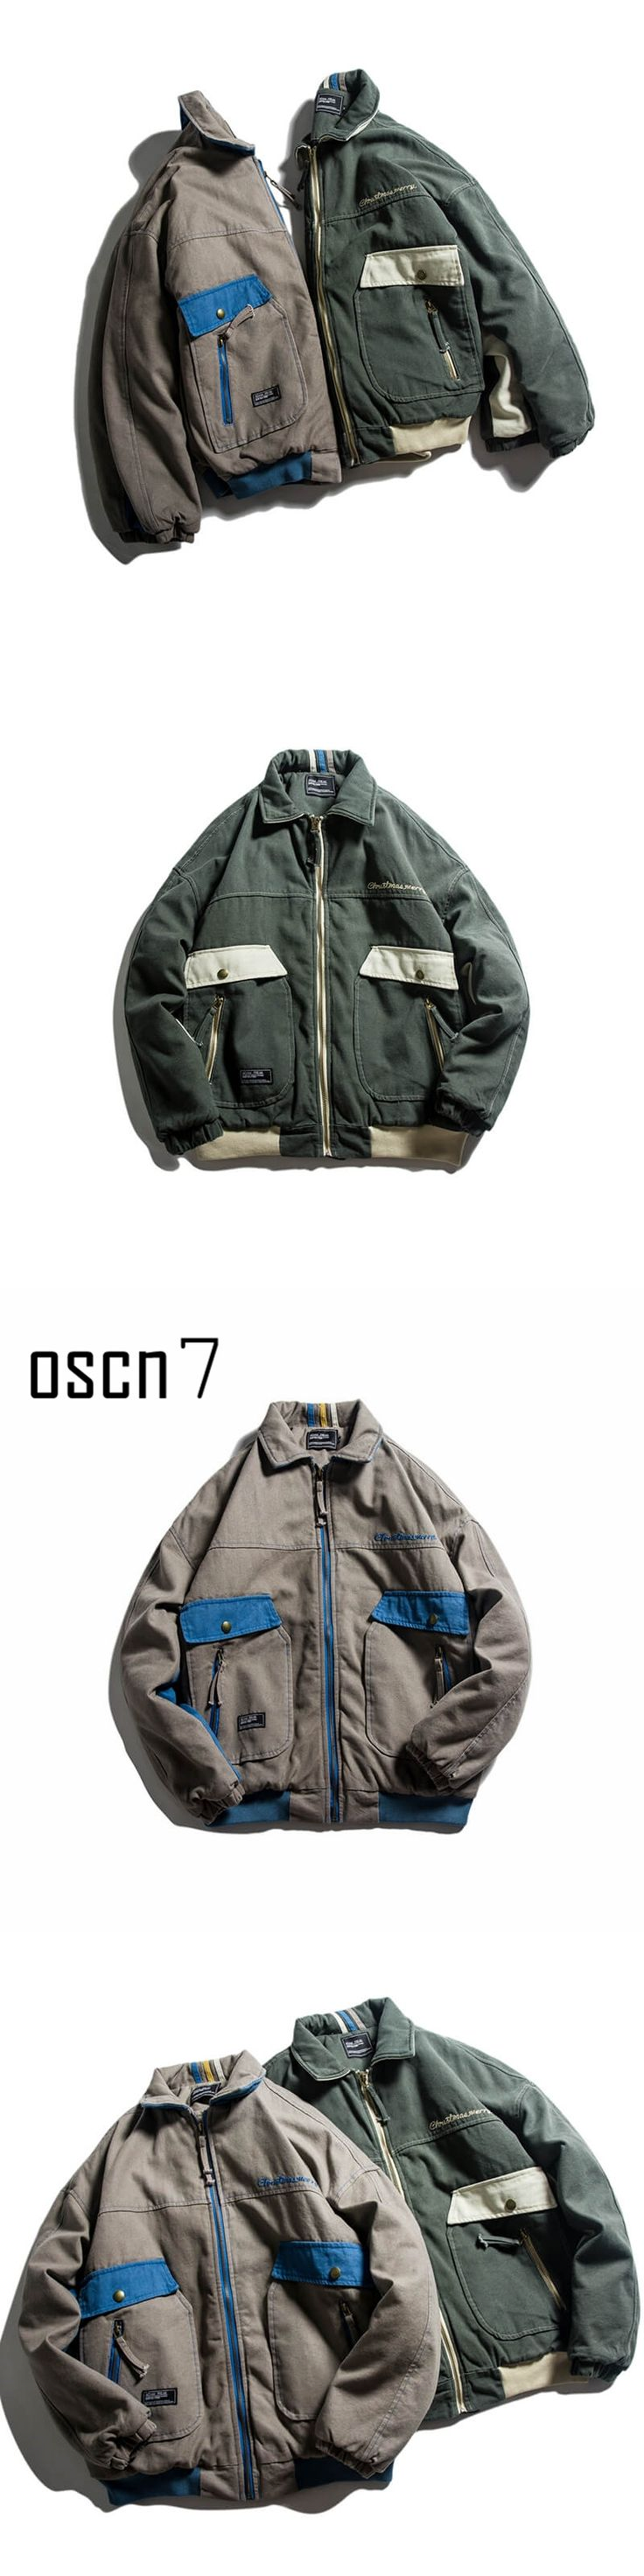 OSCN7 Winter Fashion Retro Bomber Jacket Parka Men 2017 New Bombers Military Army Parka Men Thick Warm Parka Men